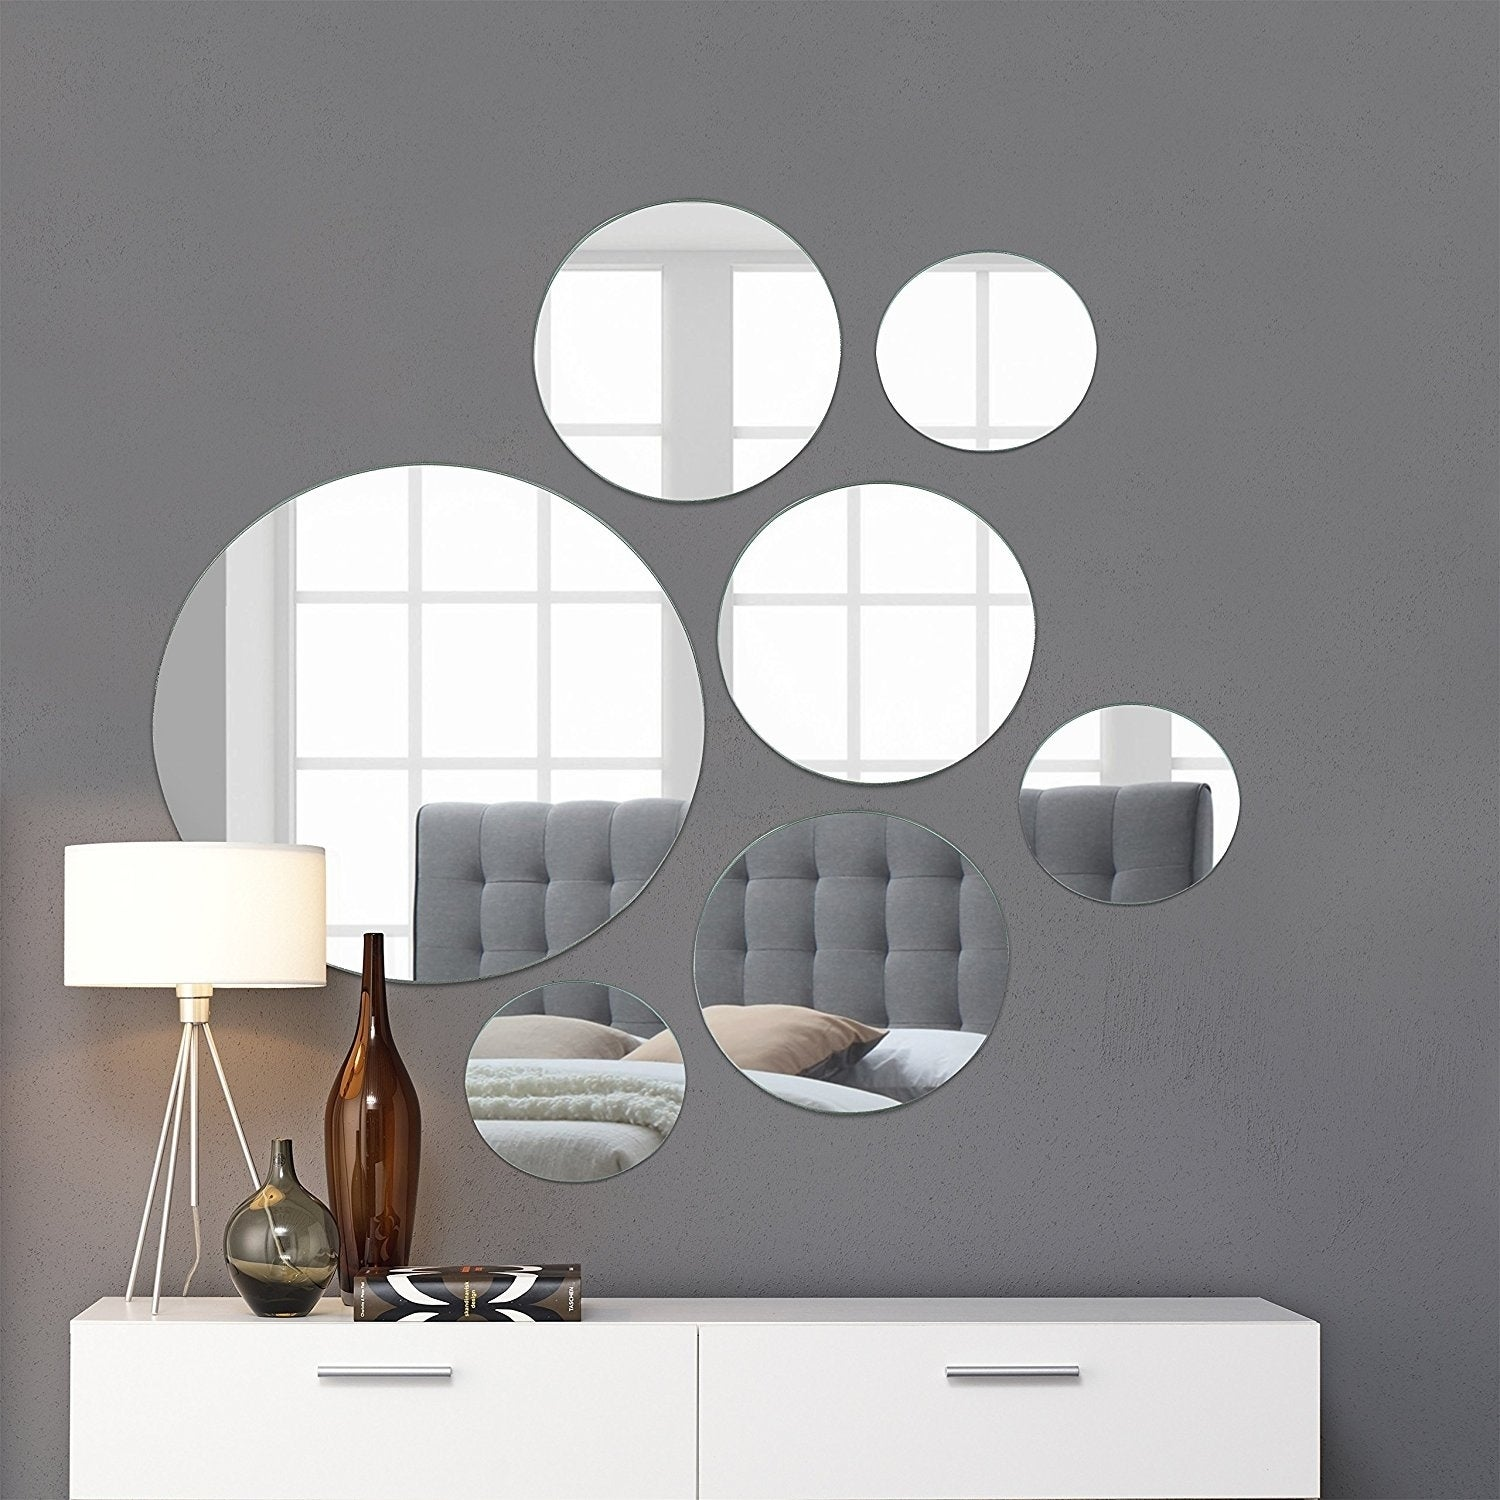 Light Round Wall Mirror Mounted Assorted Sizes - Silver -...